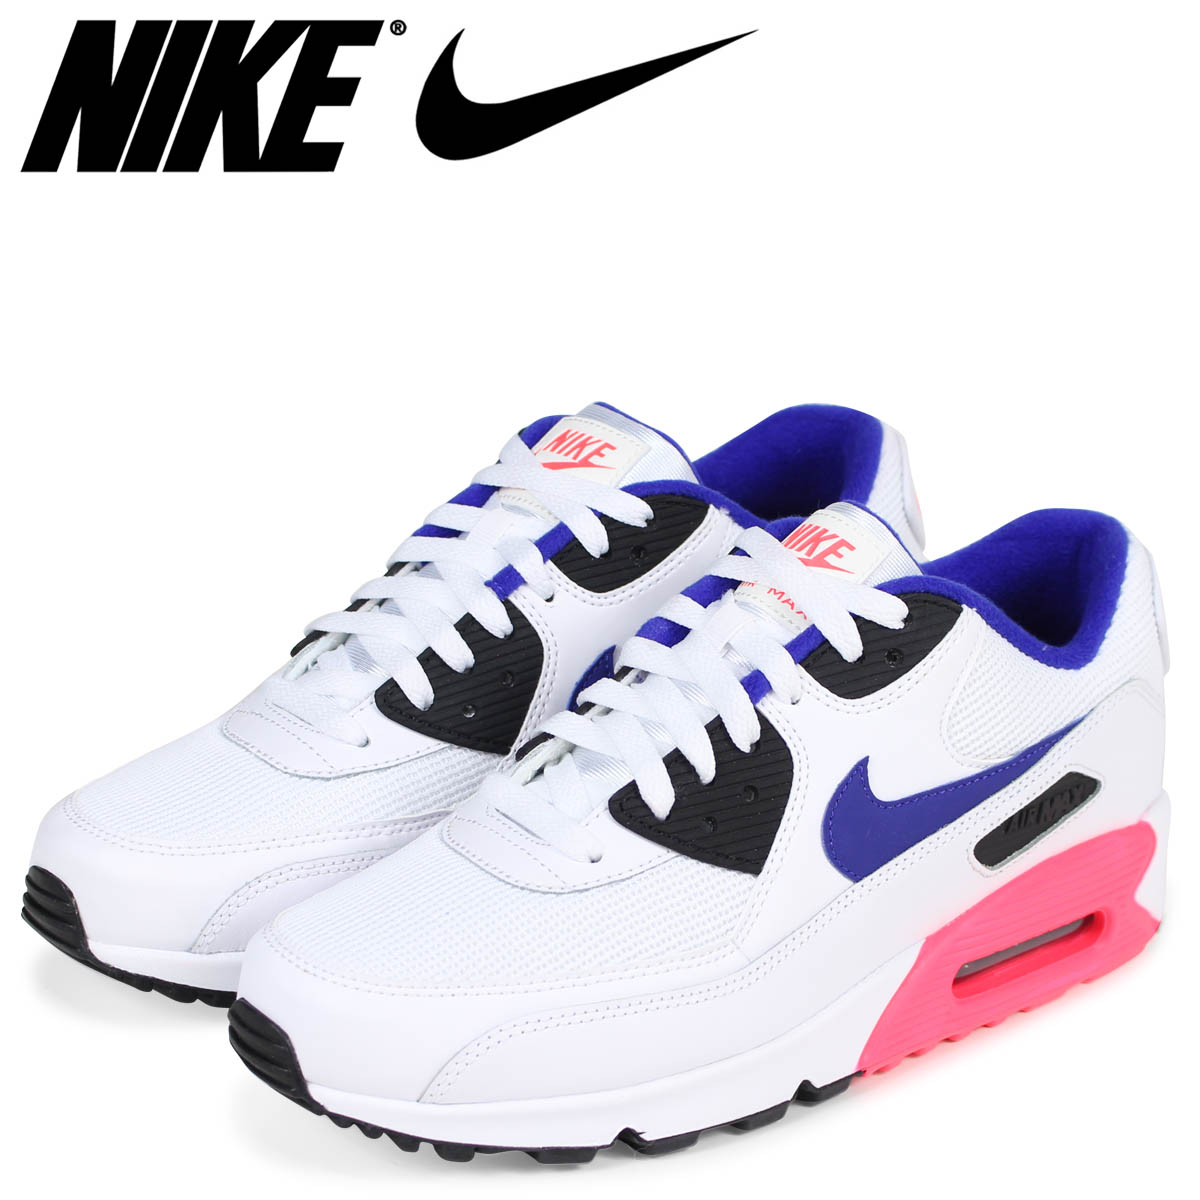 info for 690bb fa8b5 NIKE Kie Ney AMAX 90 essential sneakers men AIR MAX 90 ESSENTIAL 537,384-136  white ...